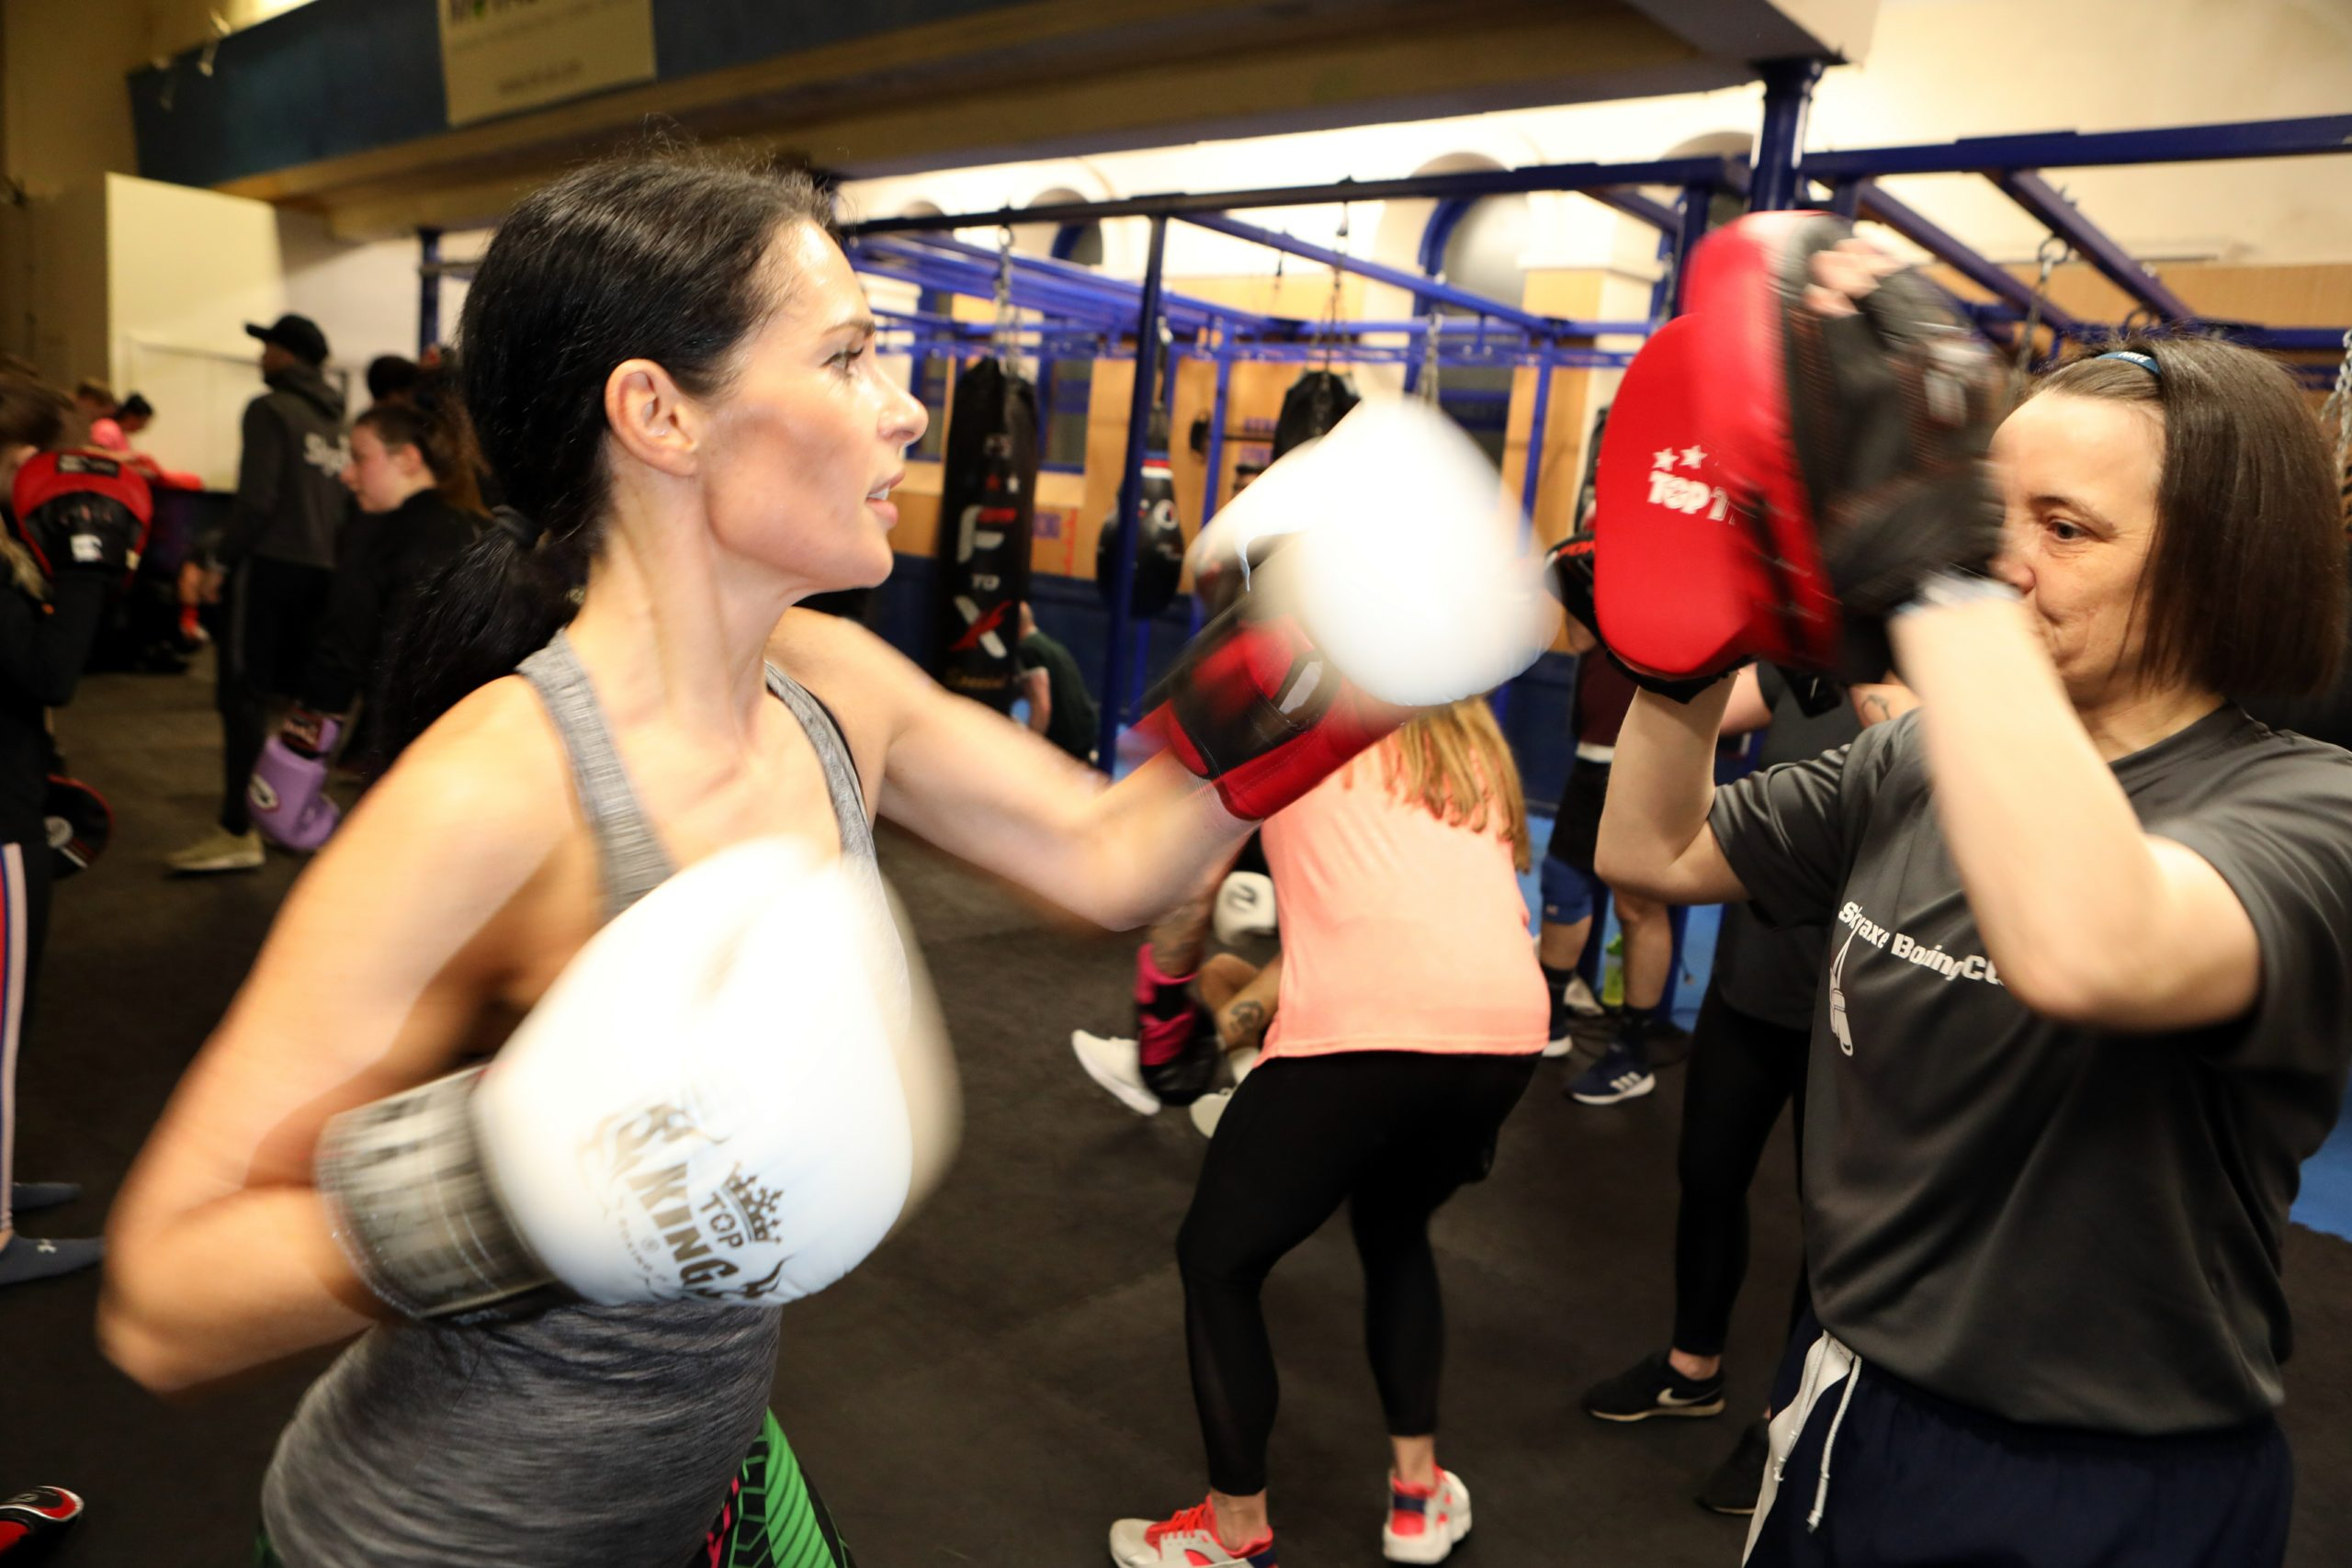 Gayle sparring with coach Niki Bain at Skyaxe Boxing Gym.